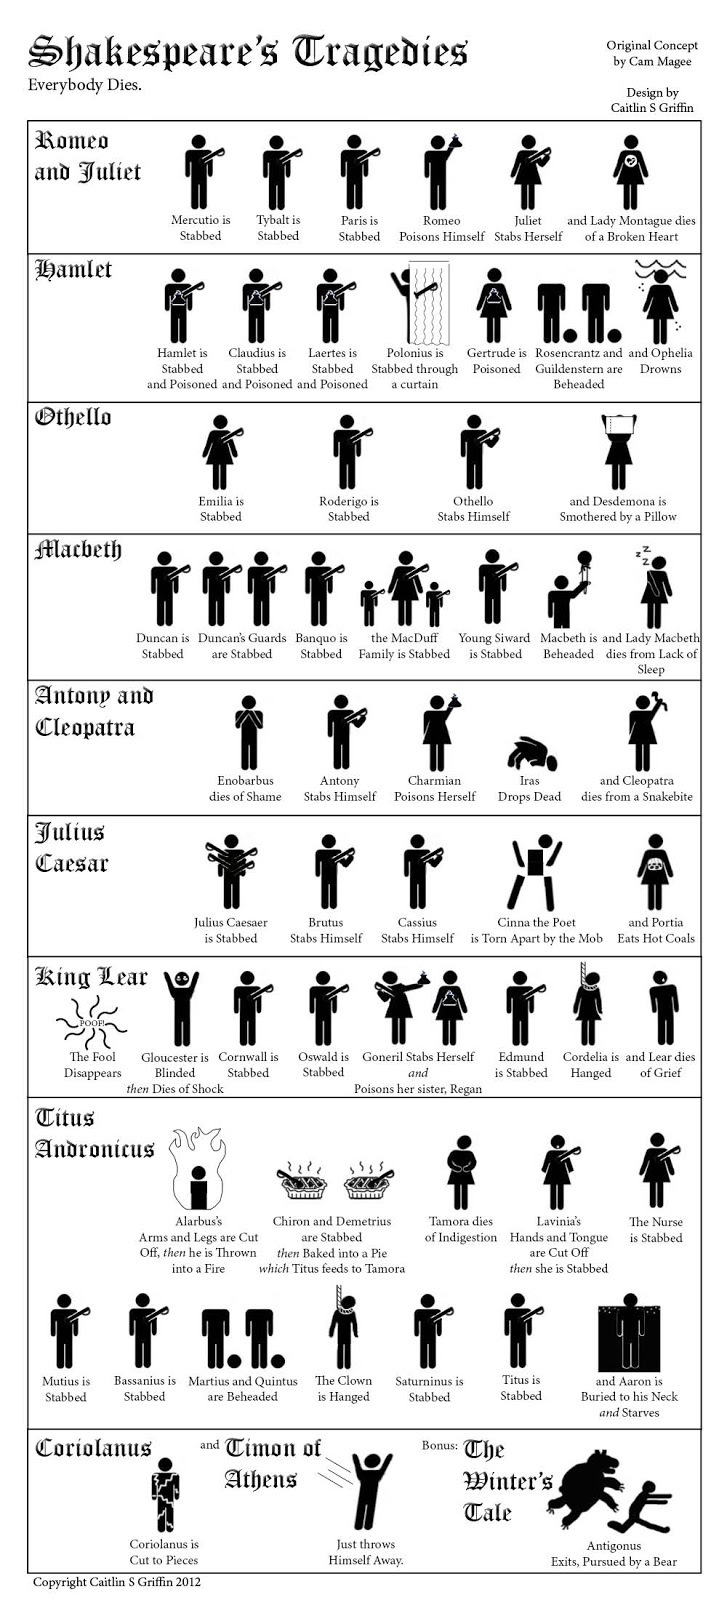 Shakespeare's Tragedies, Everybody Dies